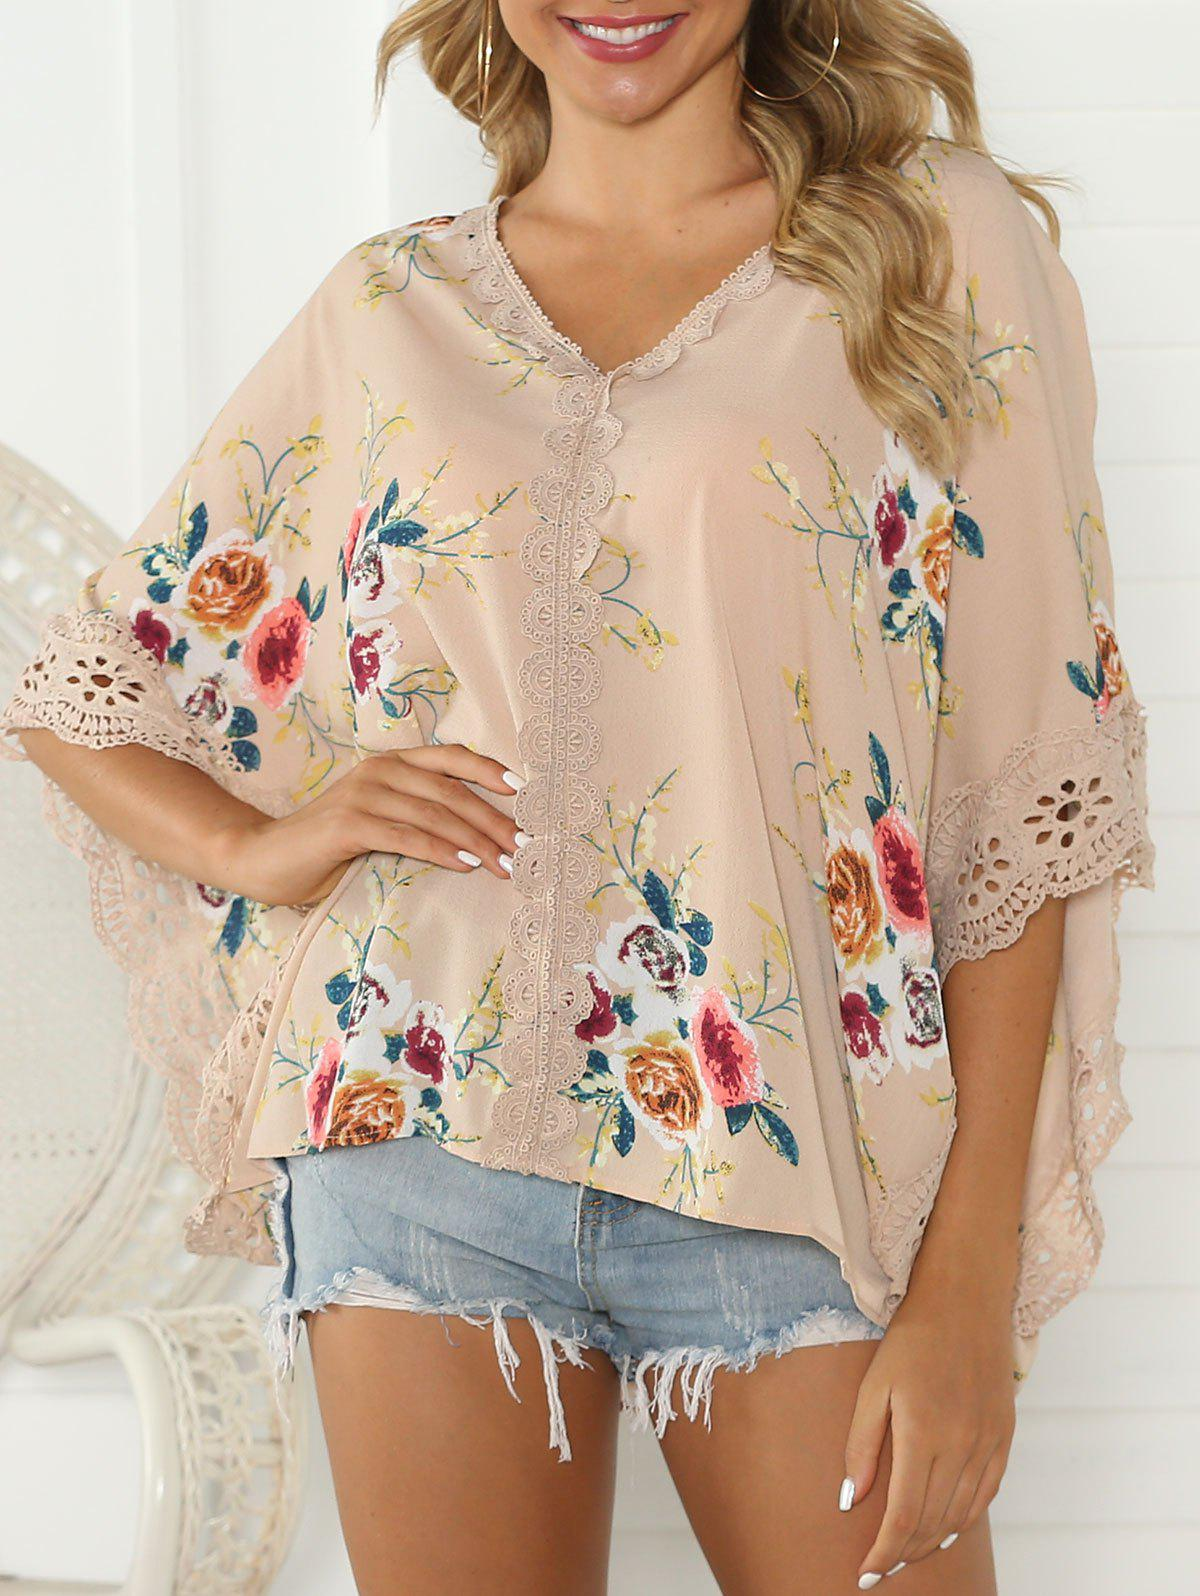 Flower Print Butterfly Sleeve Lace Trim Blouse - CHAMPAGNE S